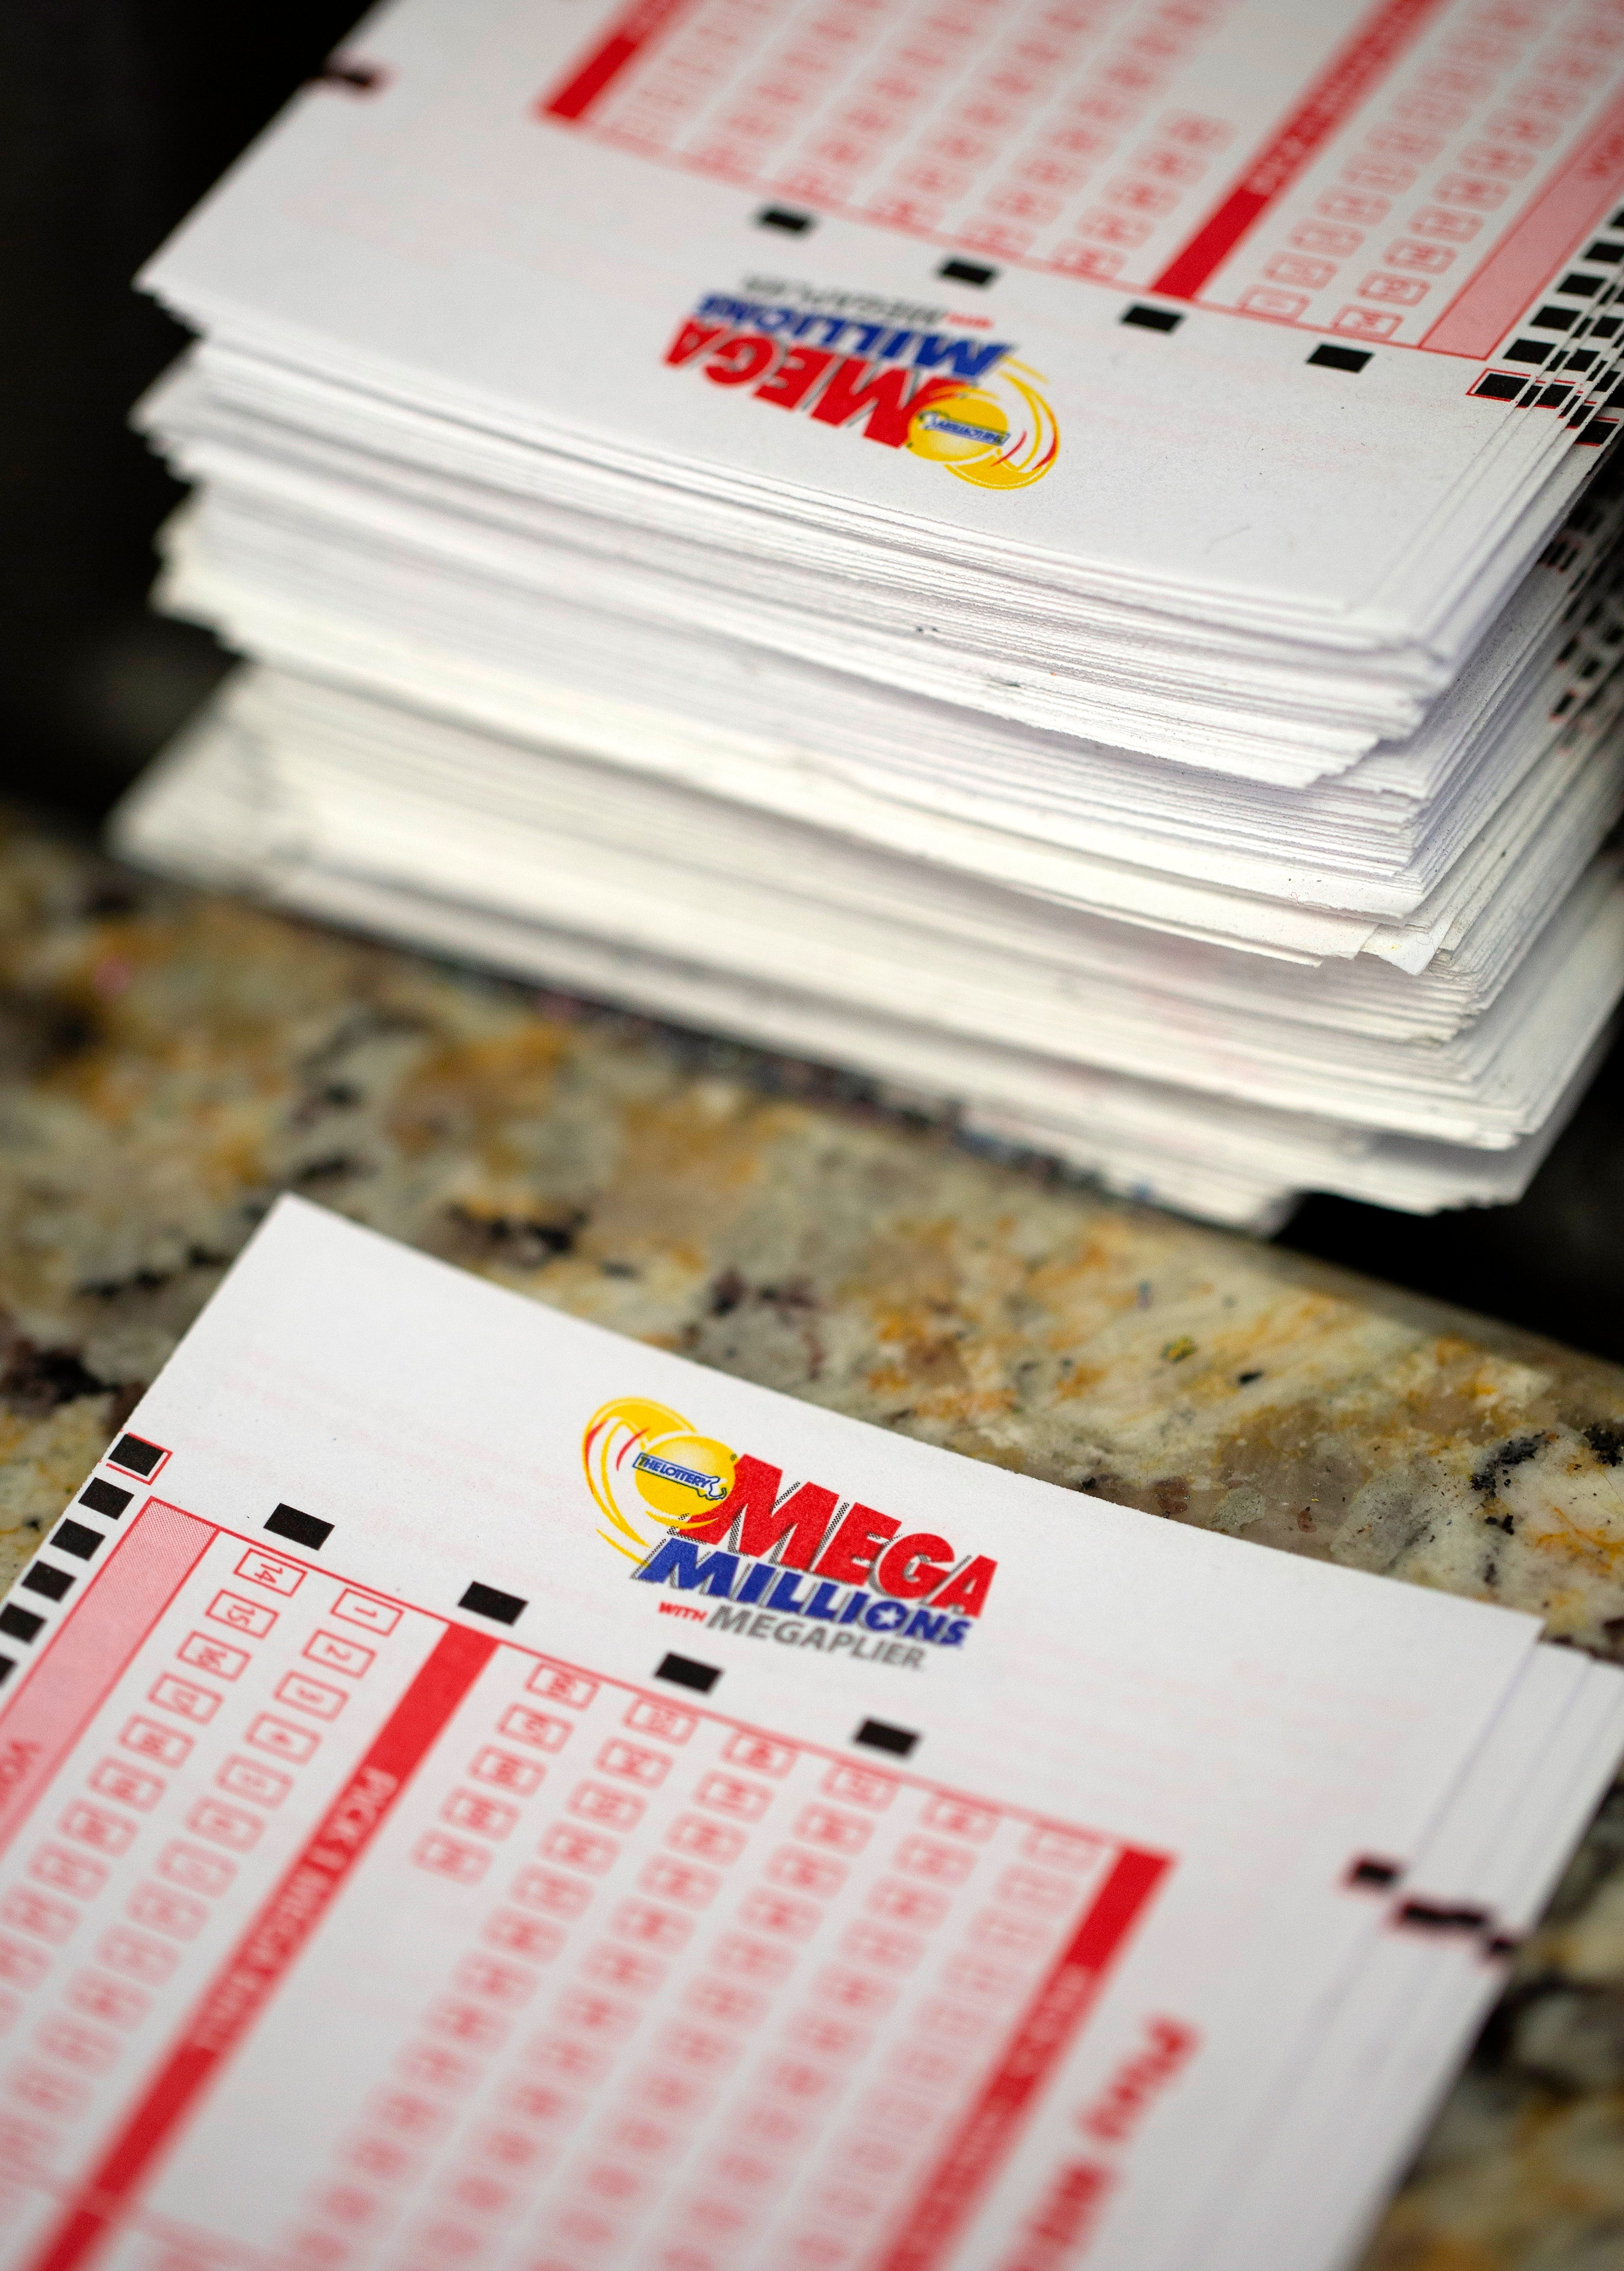 Someone in California just got Mega Millions rich